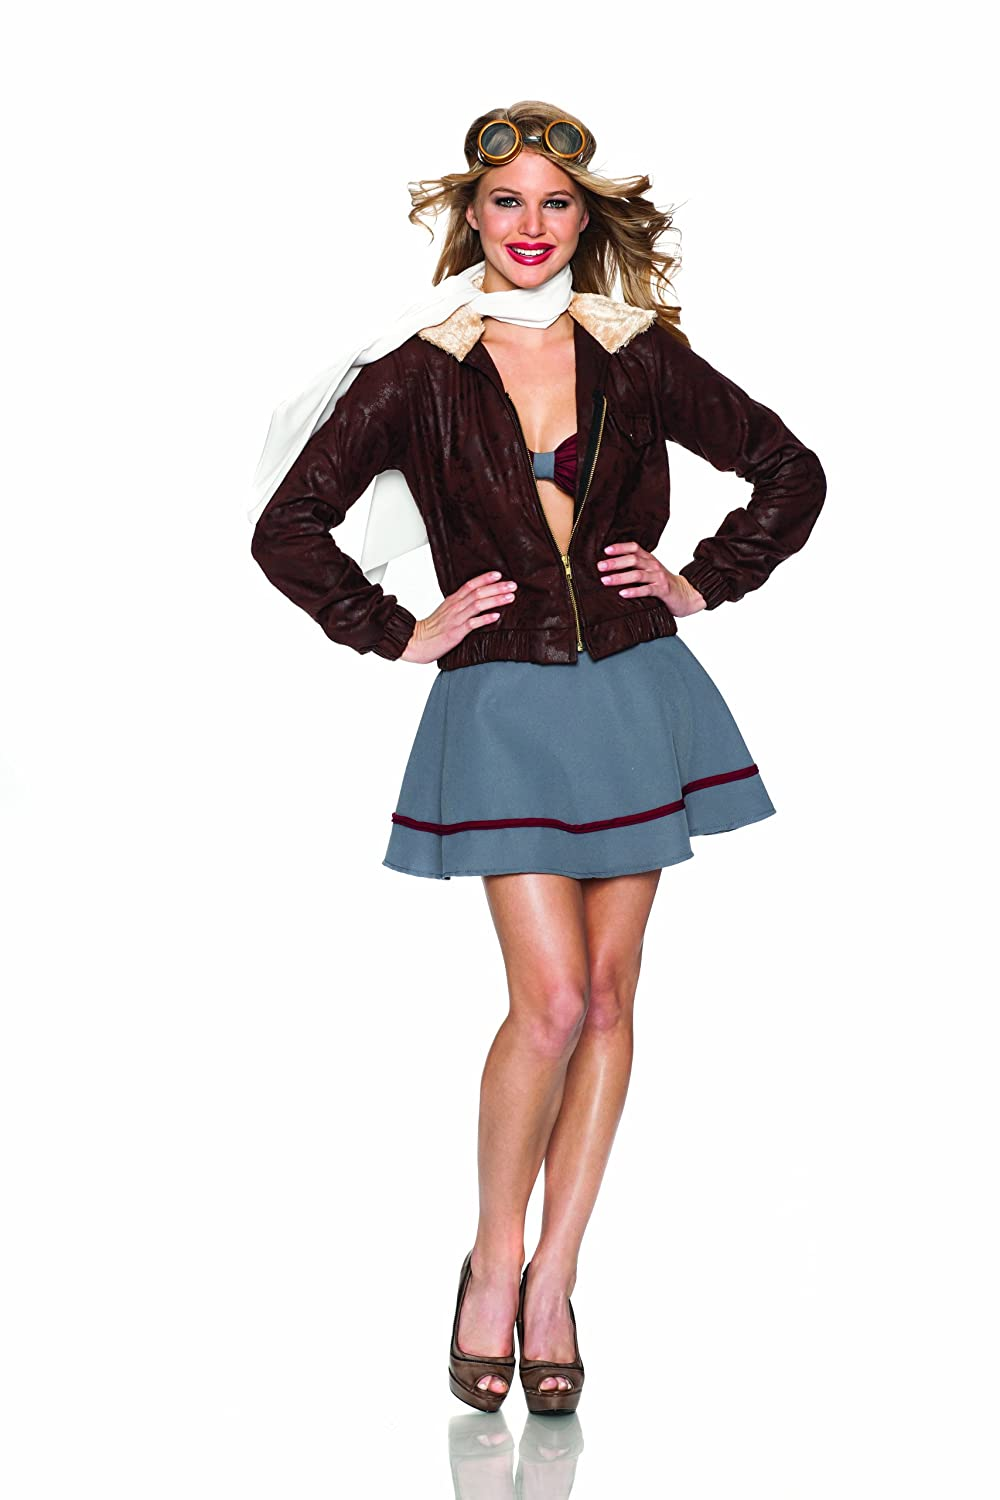 1940s Costumes- WW2, Nurse, Pinup, Rosie the Riveter Delicious Vintage Pilot Costume $40.00 AT vintagedancer.com